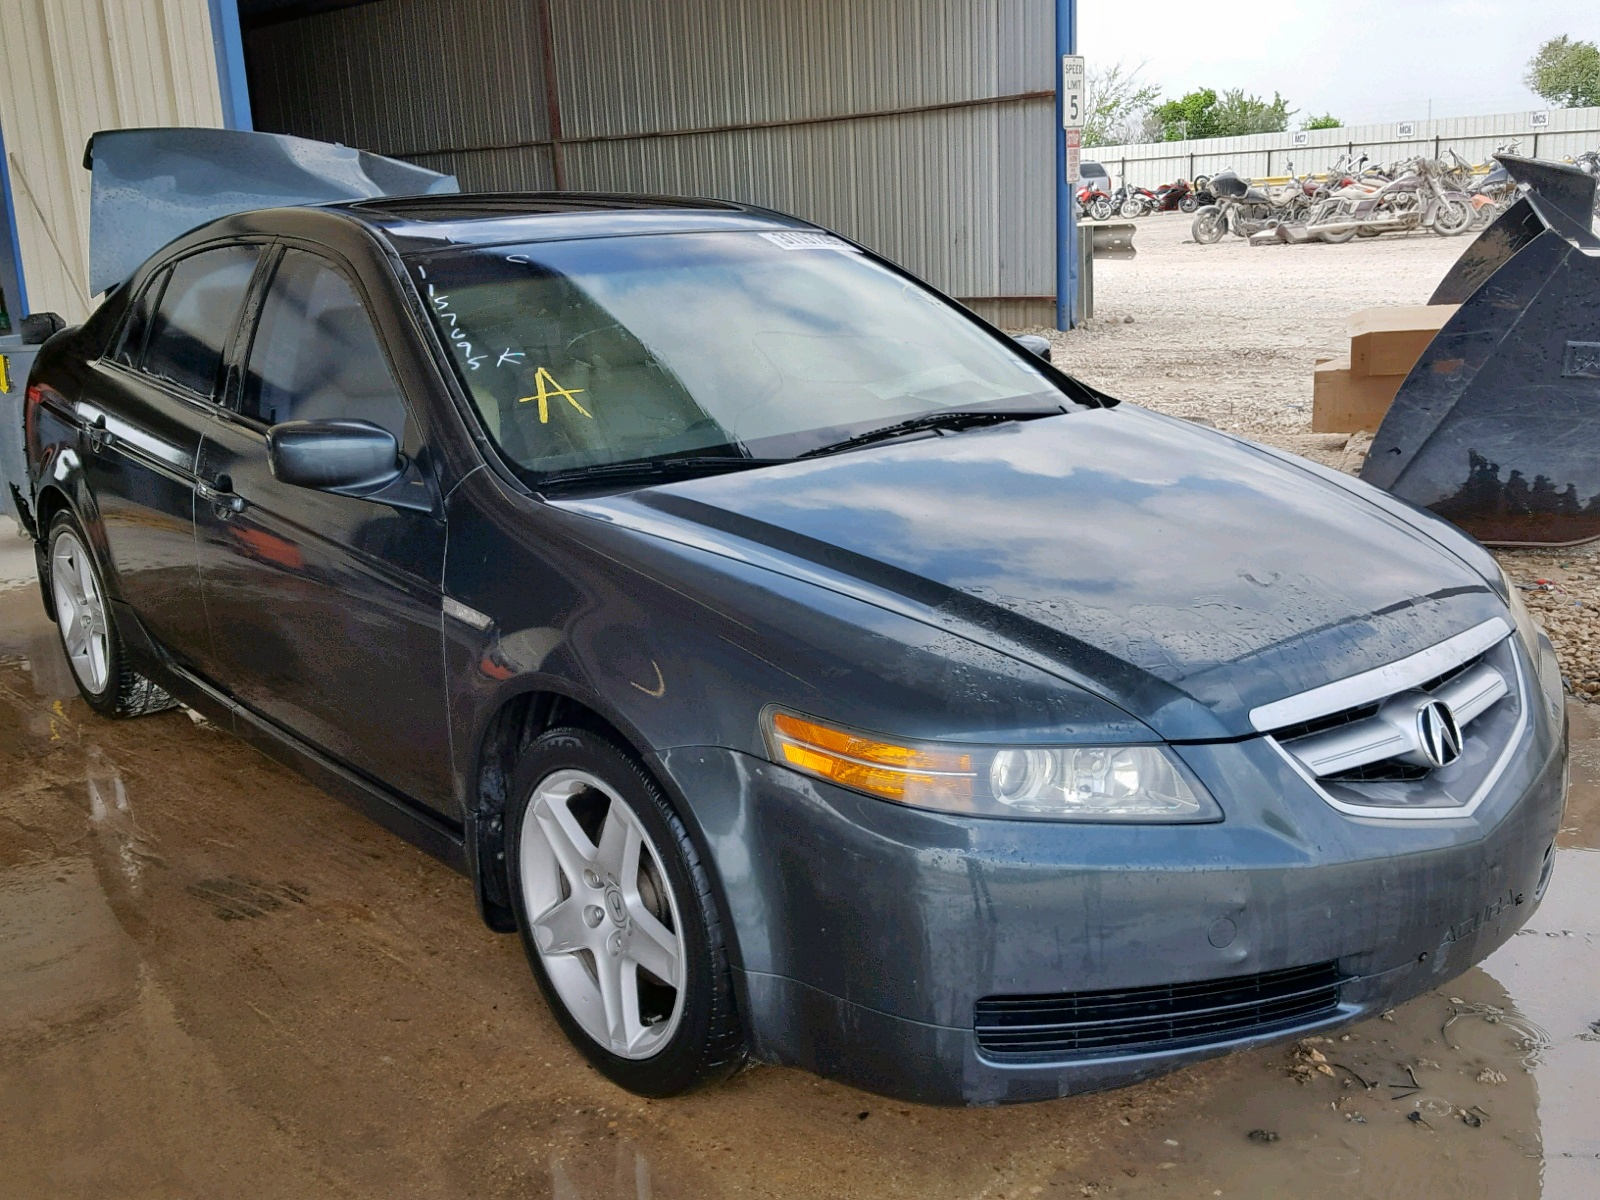 hight resolution of 19uua66225a064652 2005 acura tl 3 2l left view 19uua66225a064652